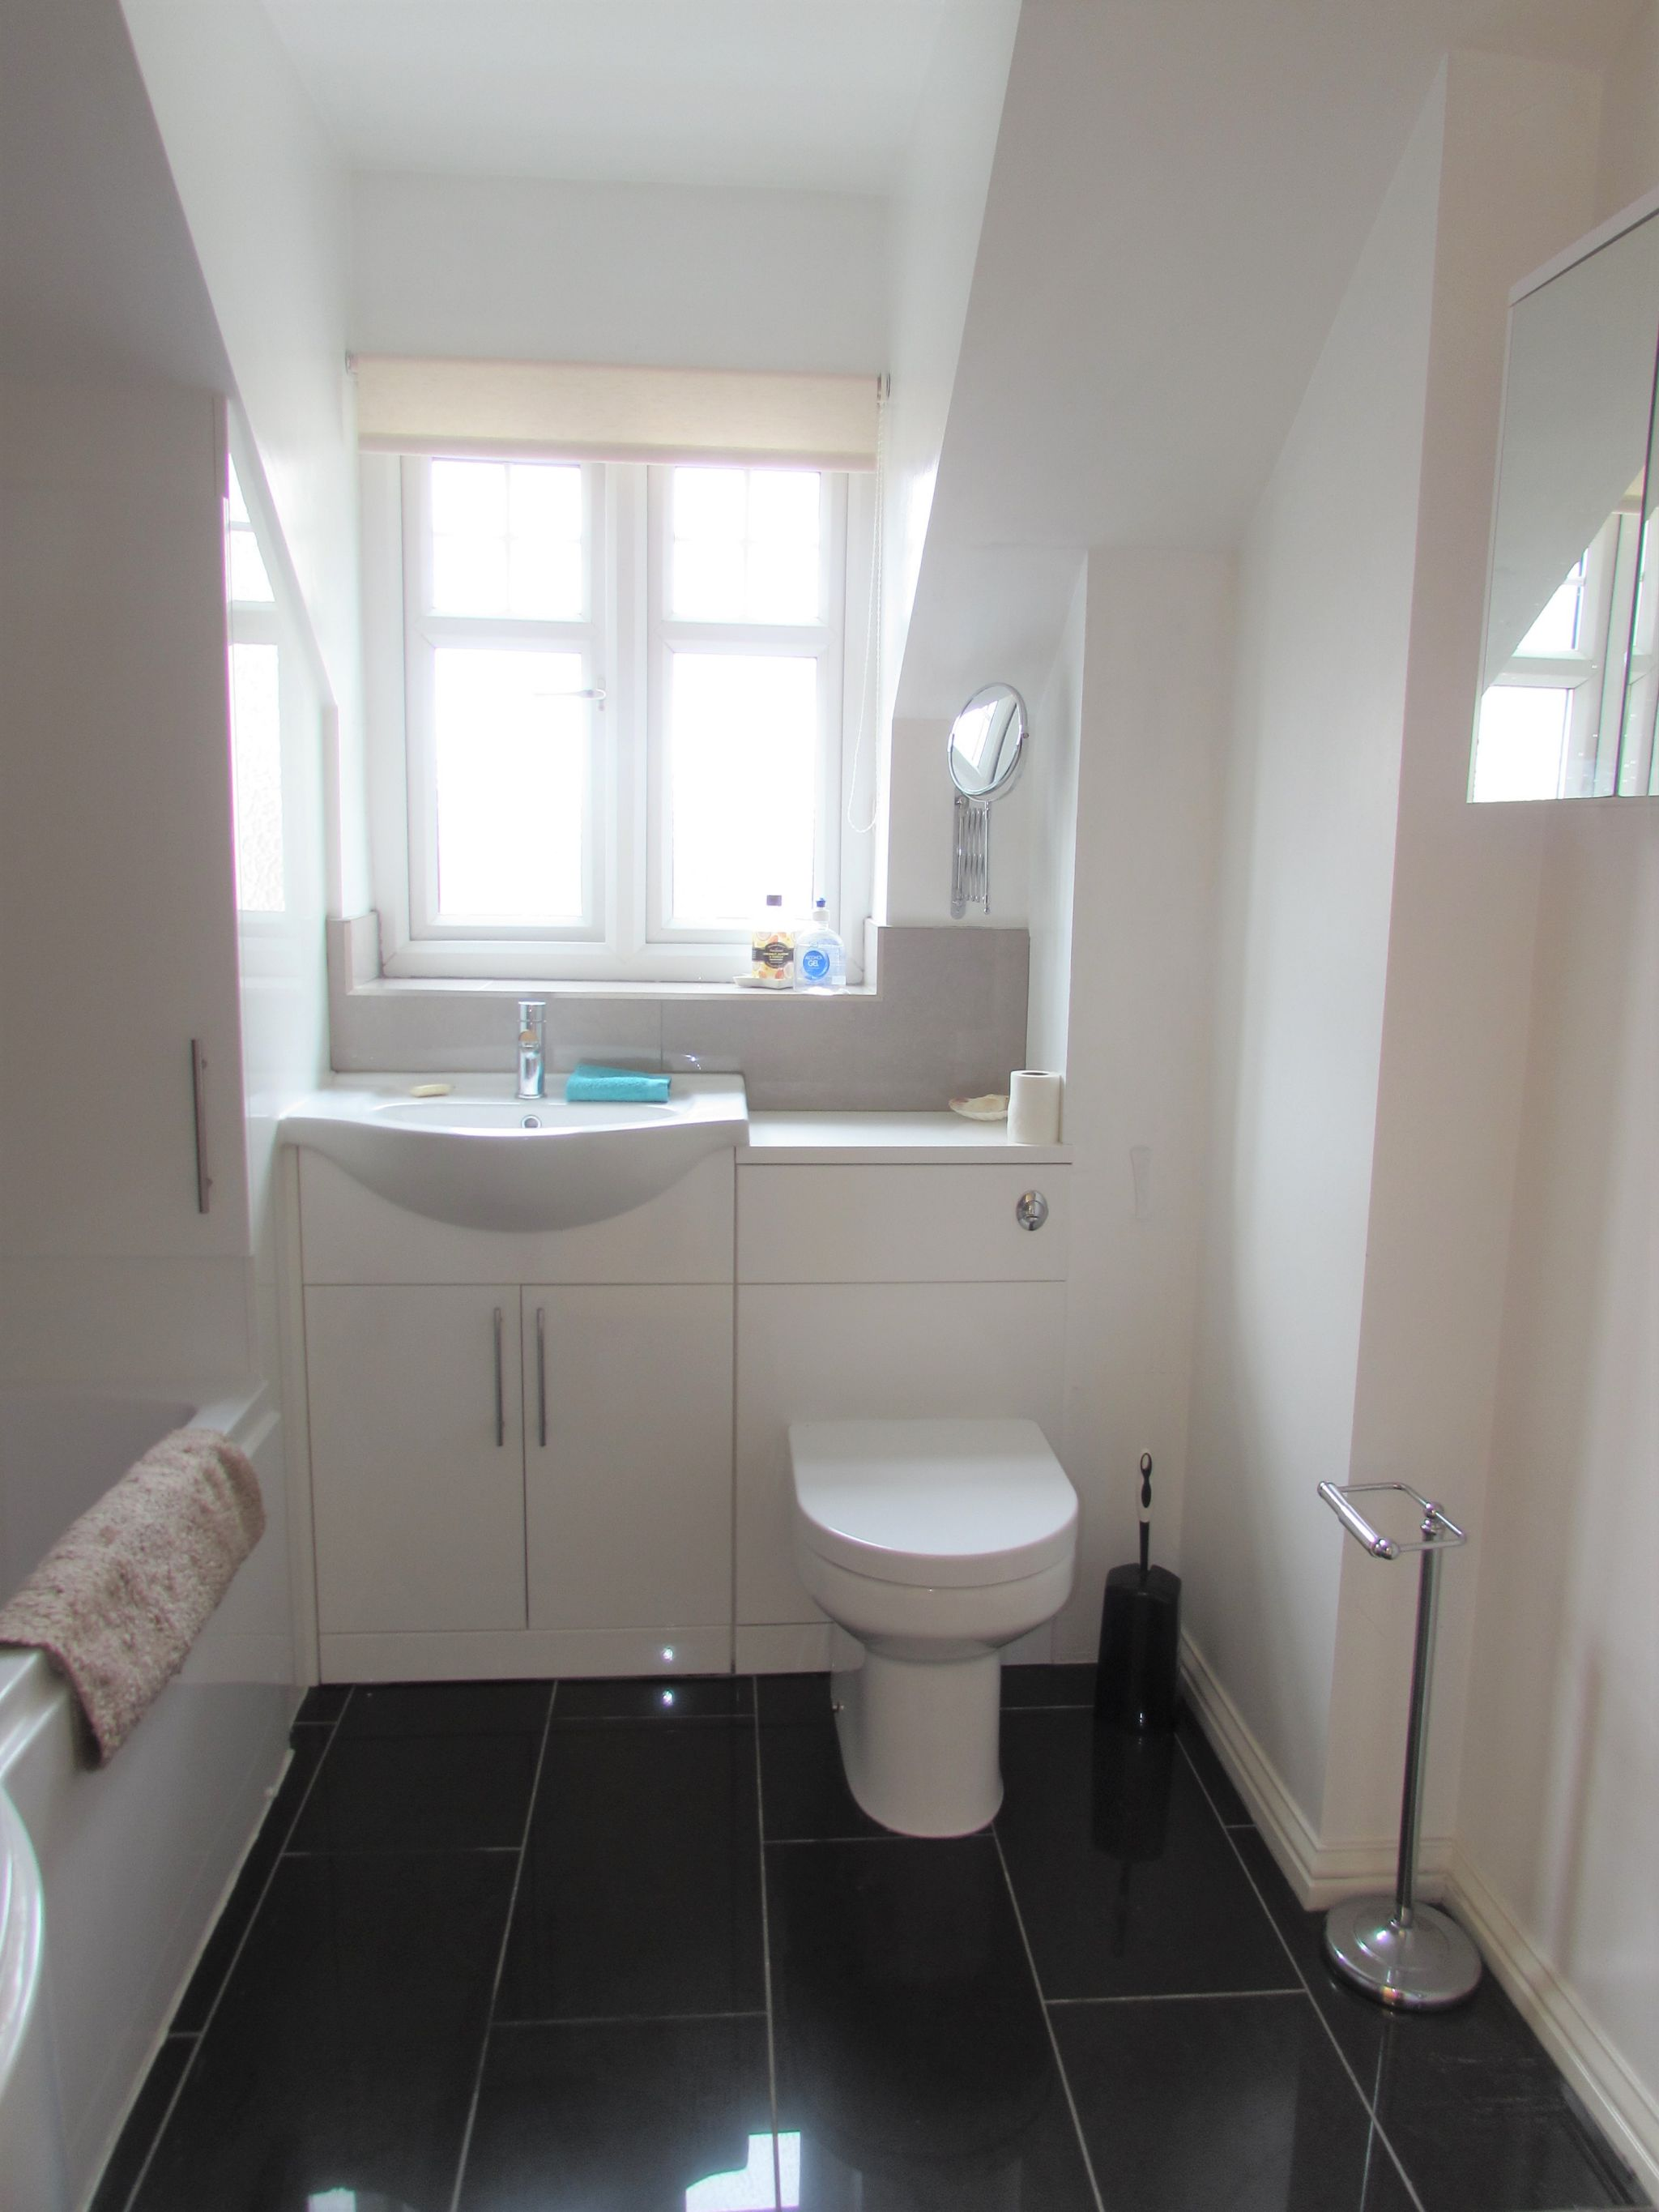 1 Bedroom Shared Flat/apartment To Rent - Photograph 6